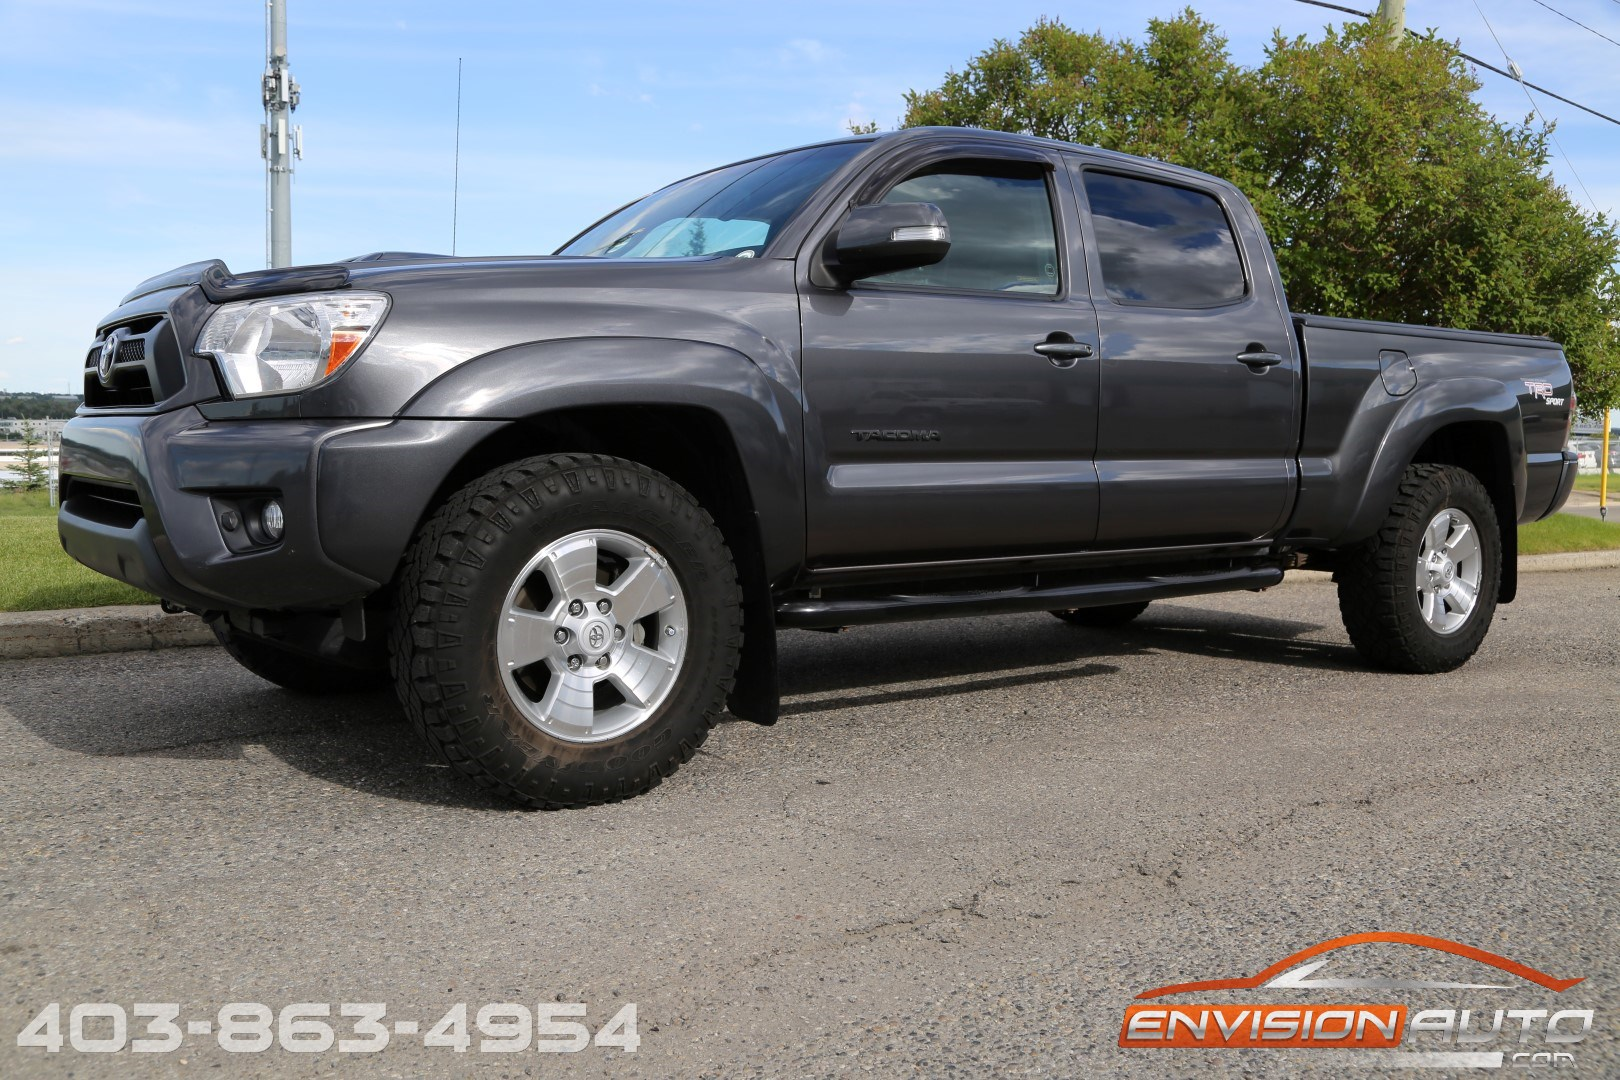 2013 Toyota Tacoma Double Cab 4 215 4 Trd Supercharged